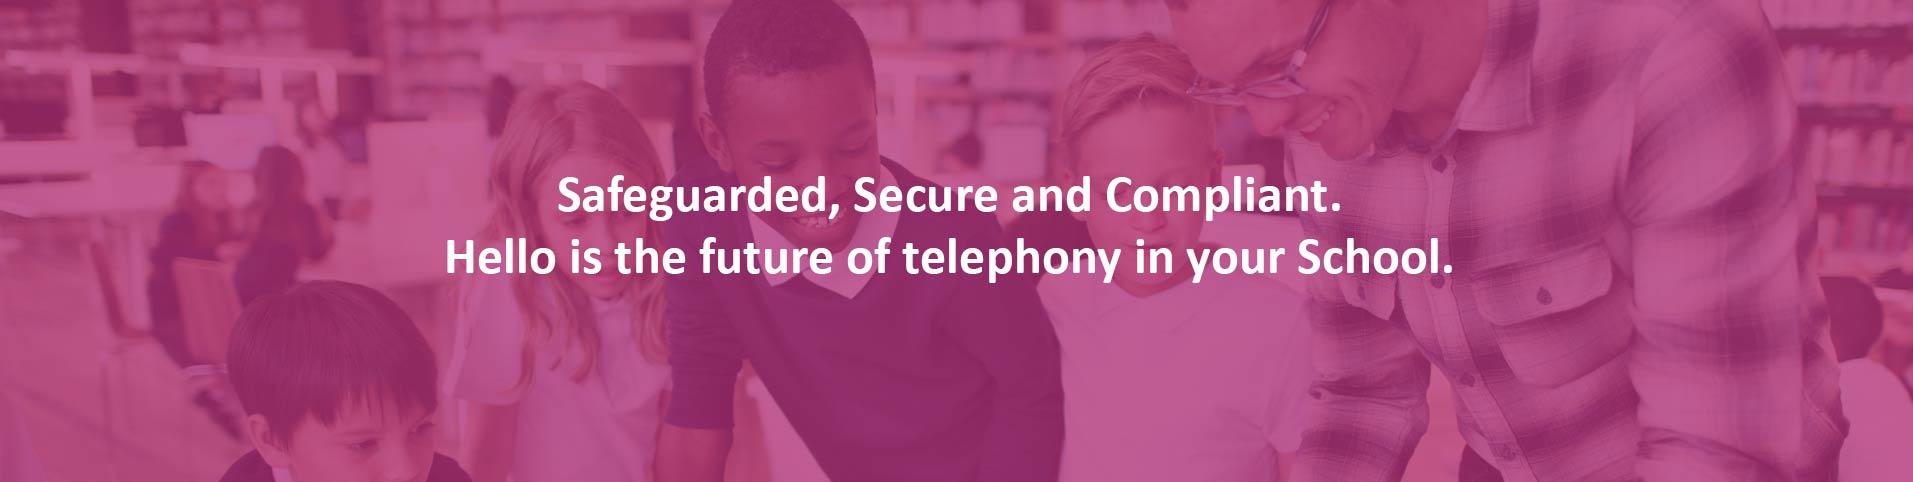 Safeguarding, secure and compliant school VoIP phone system